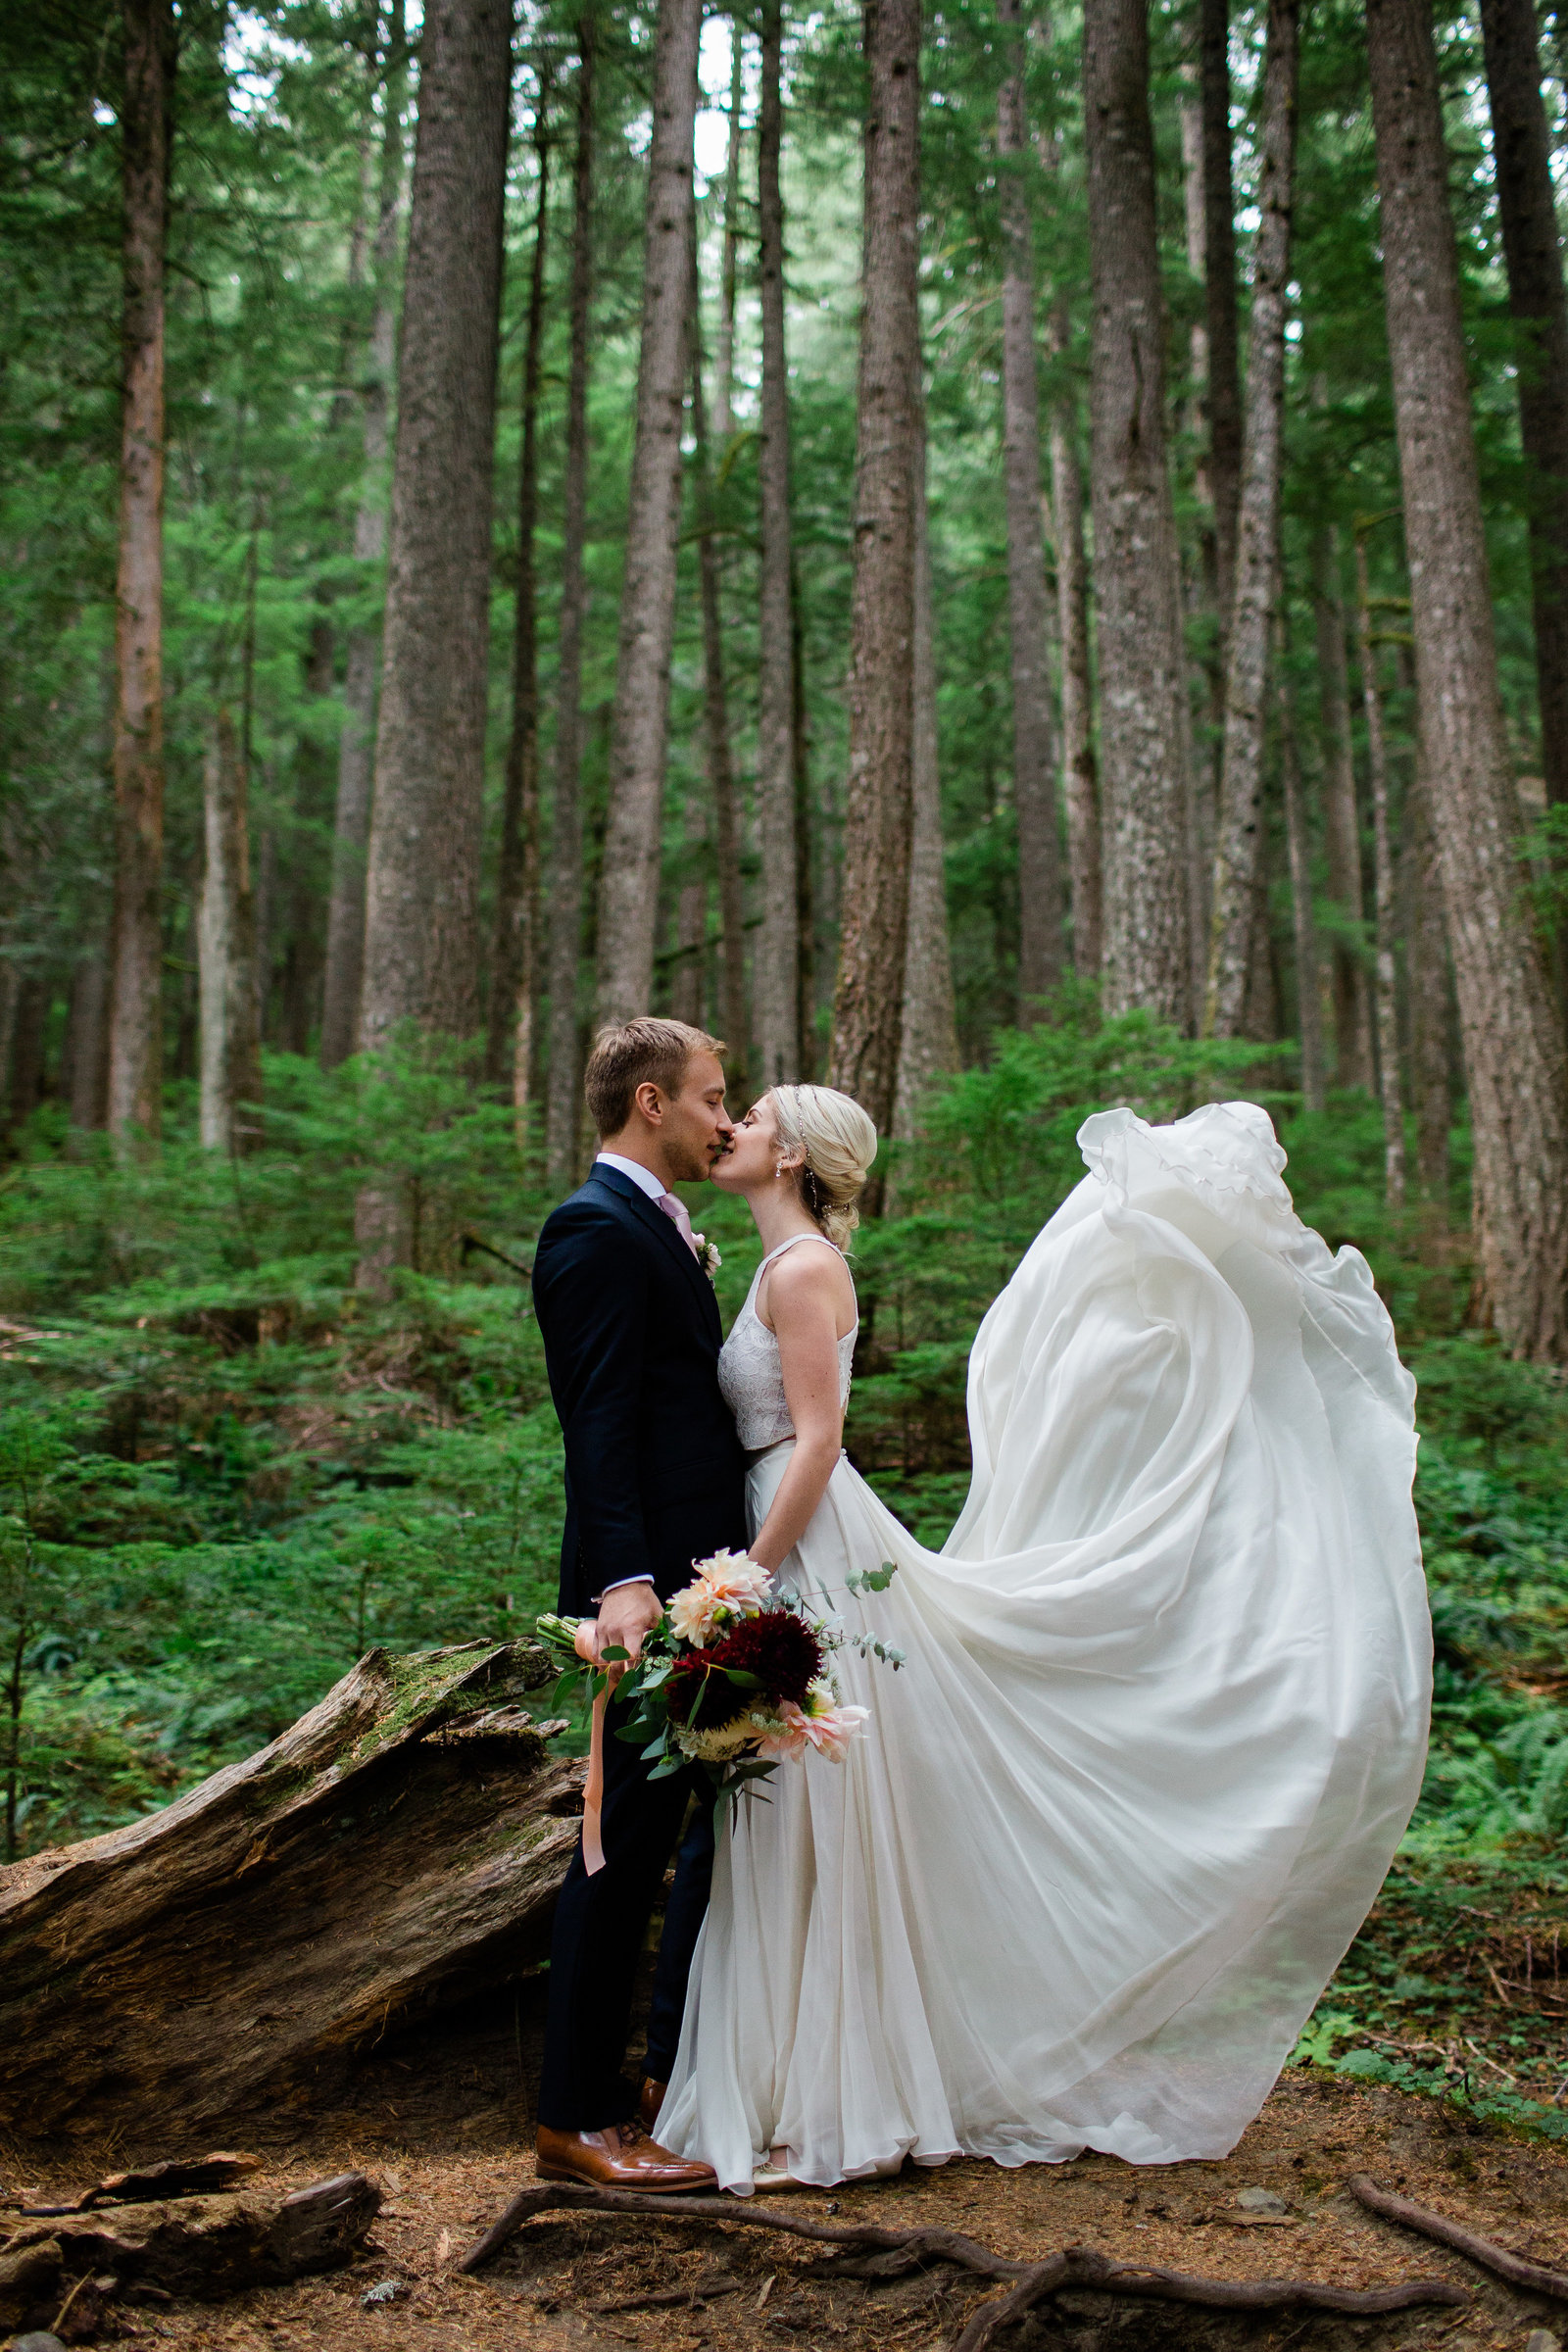 mount-rainier-national-park-elopement-cameron-zegers-photographer-seattle-114